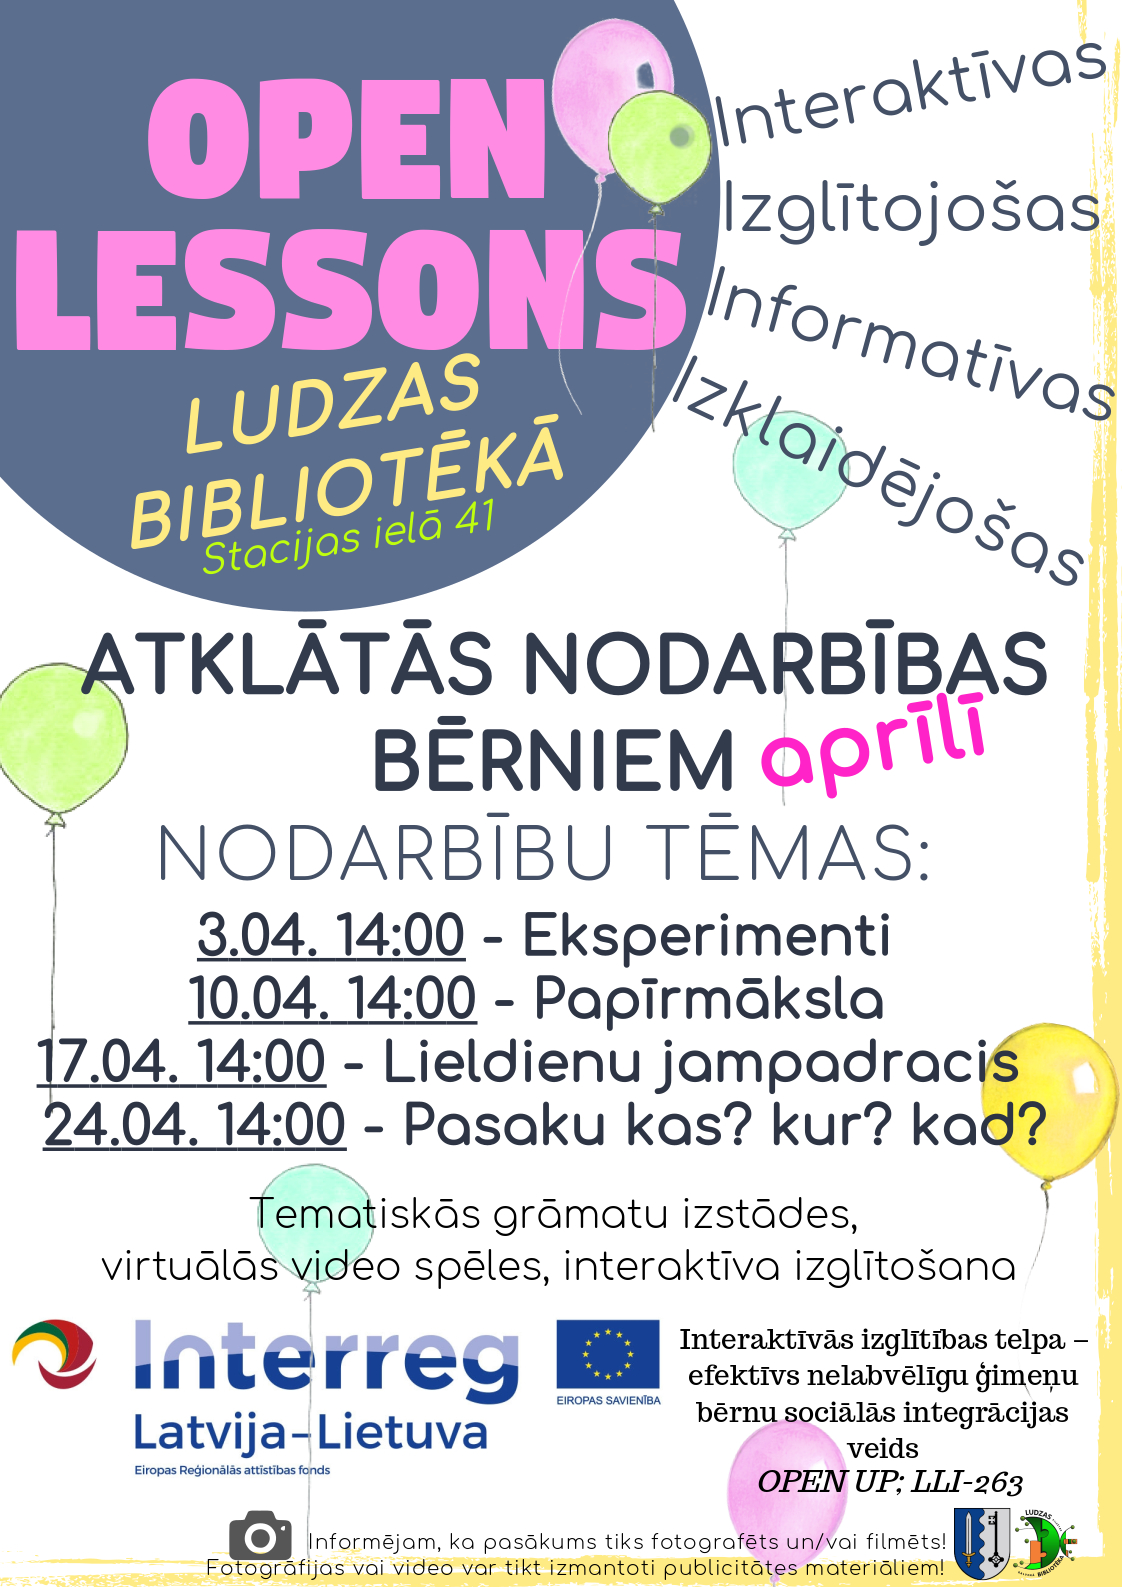 Open lessons April